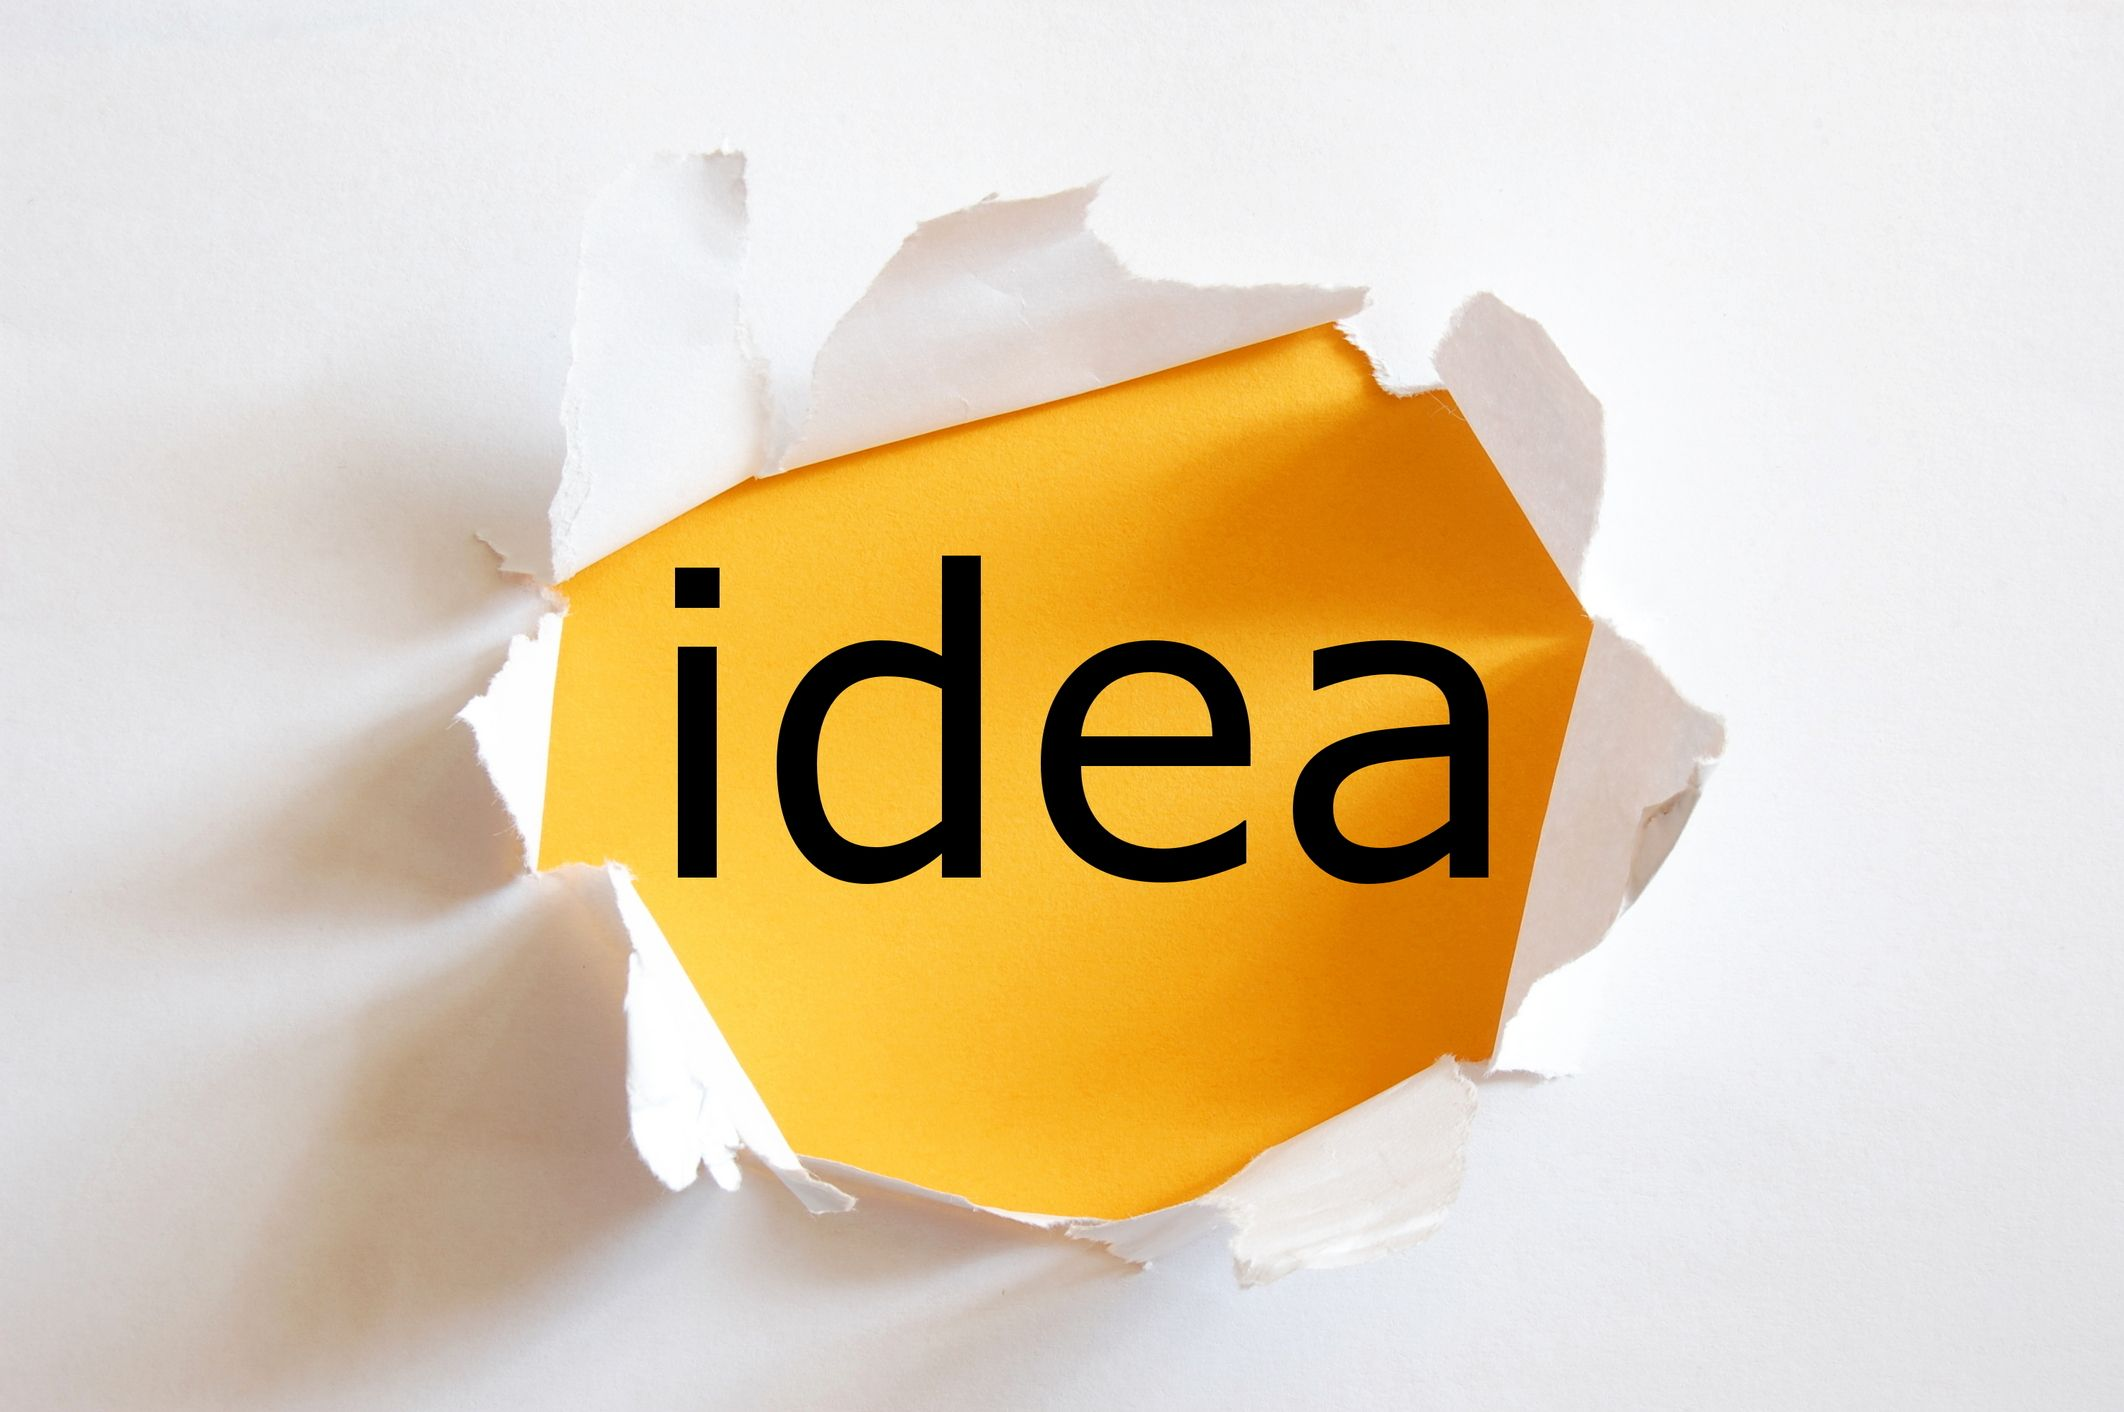 just takes one idea - Idea Design